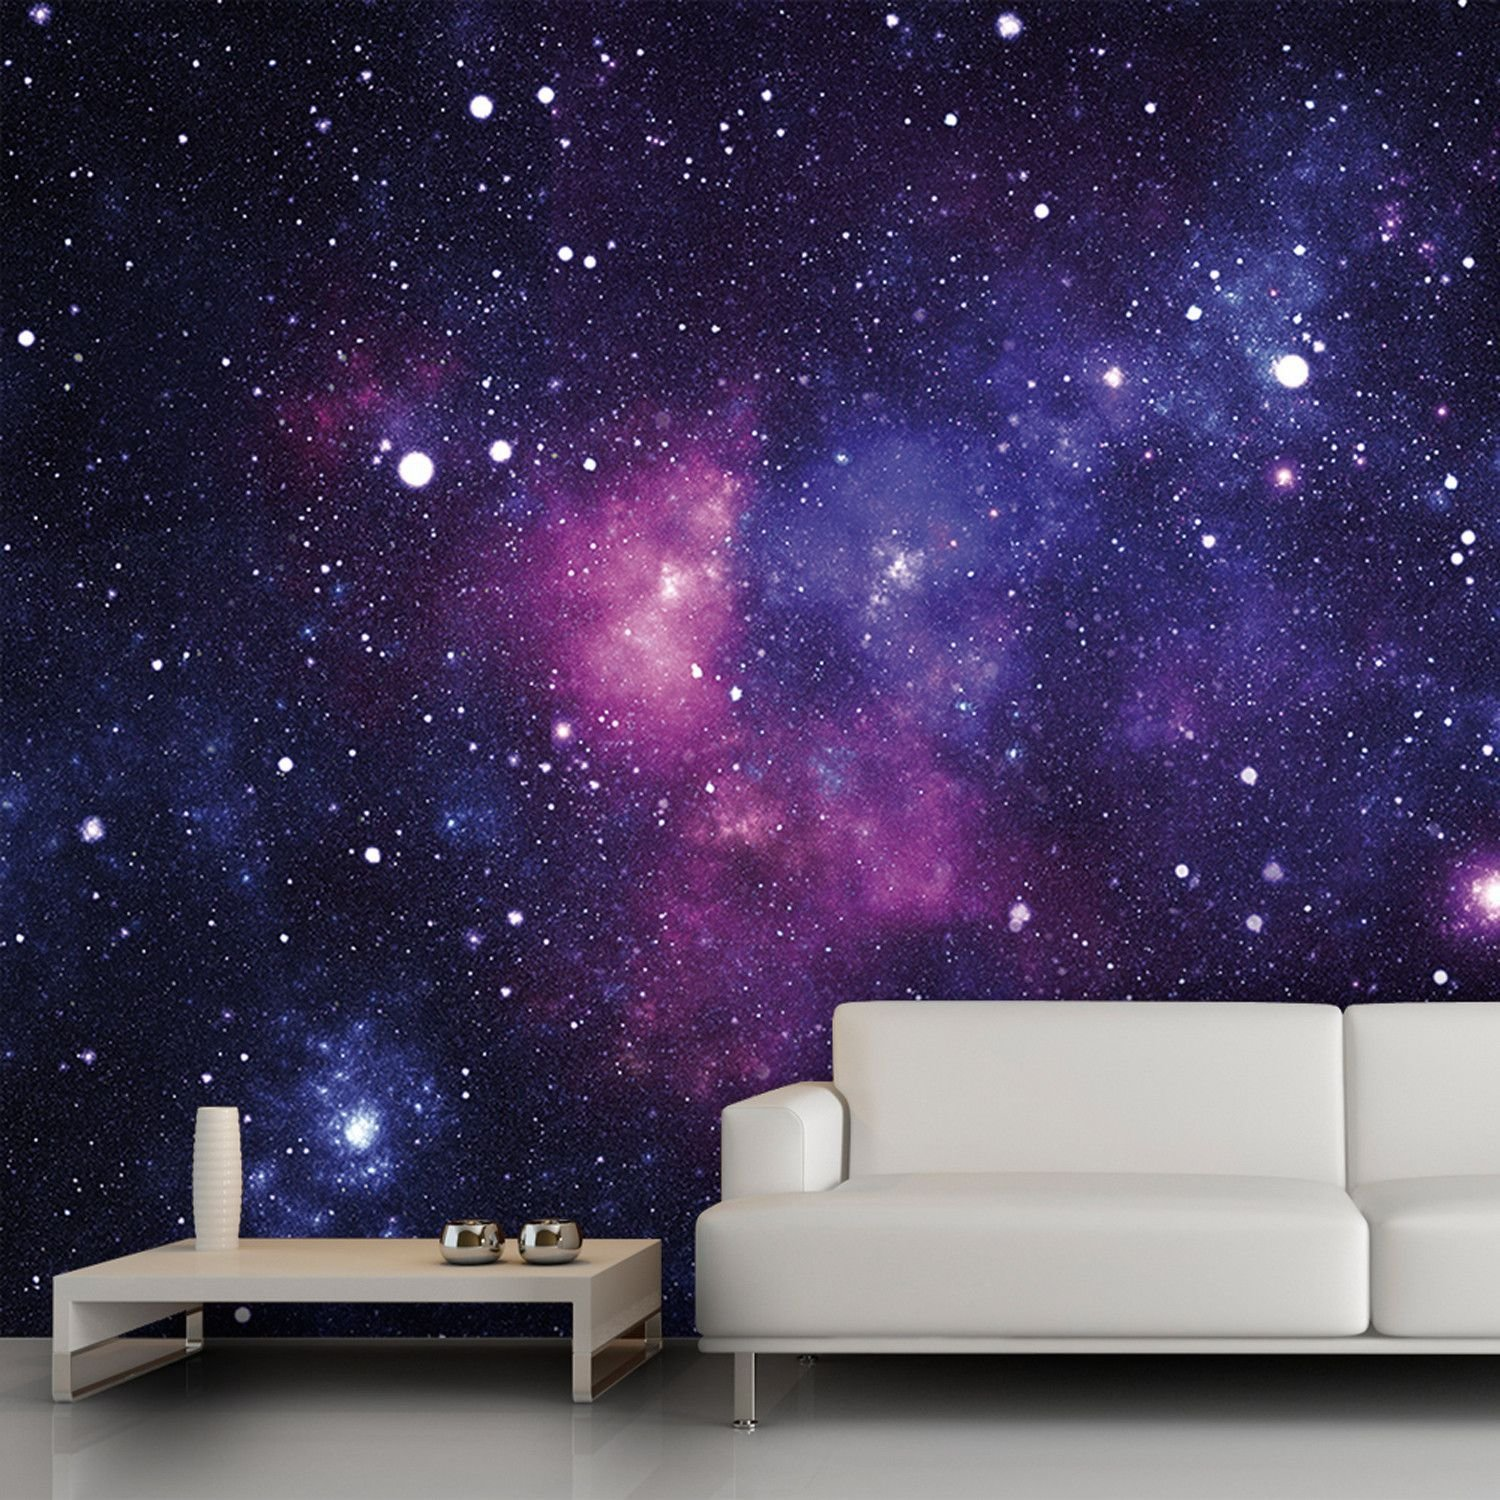 Best Galaxy Ideas For School Of Rock Galaxy Room Cool Wall With Pictures